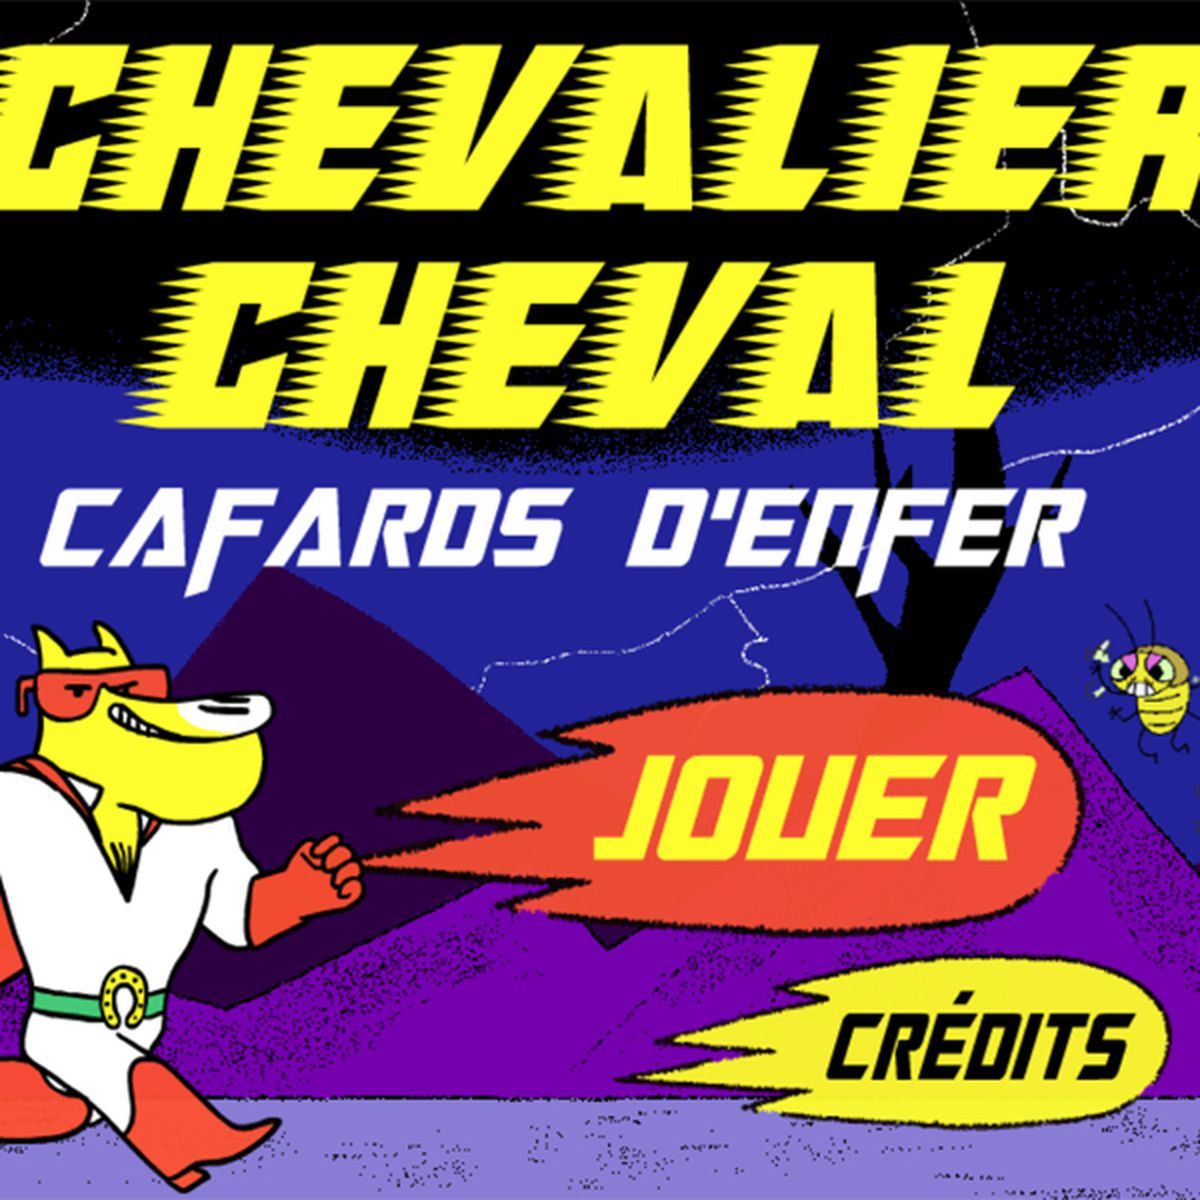 Chevalier Cheval, cafards d'enfer |